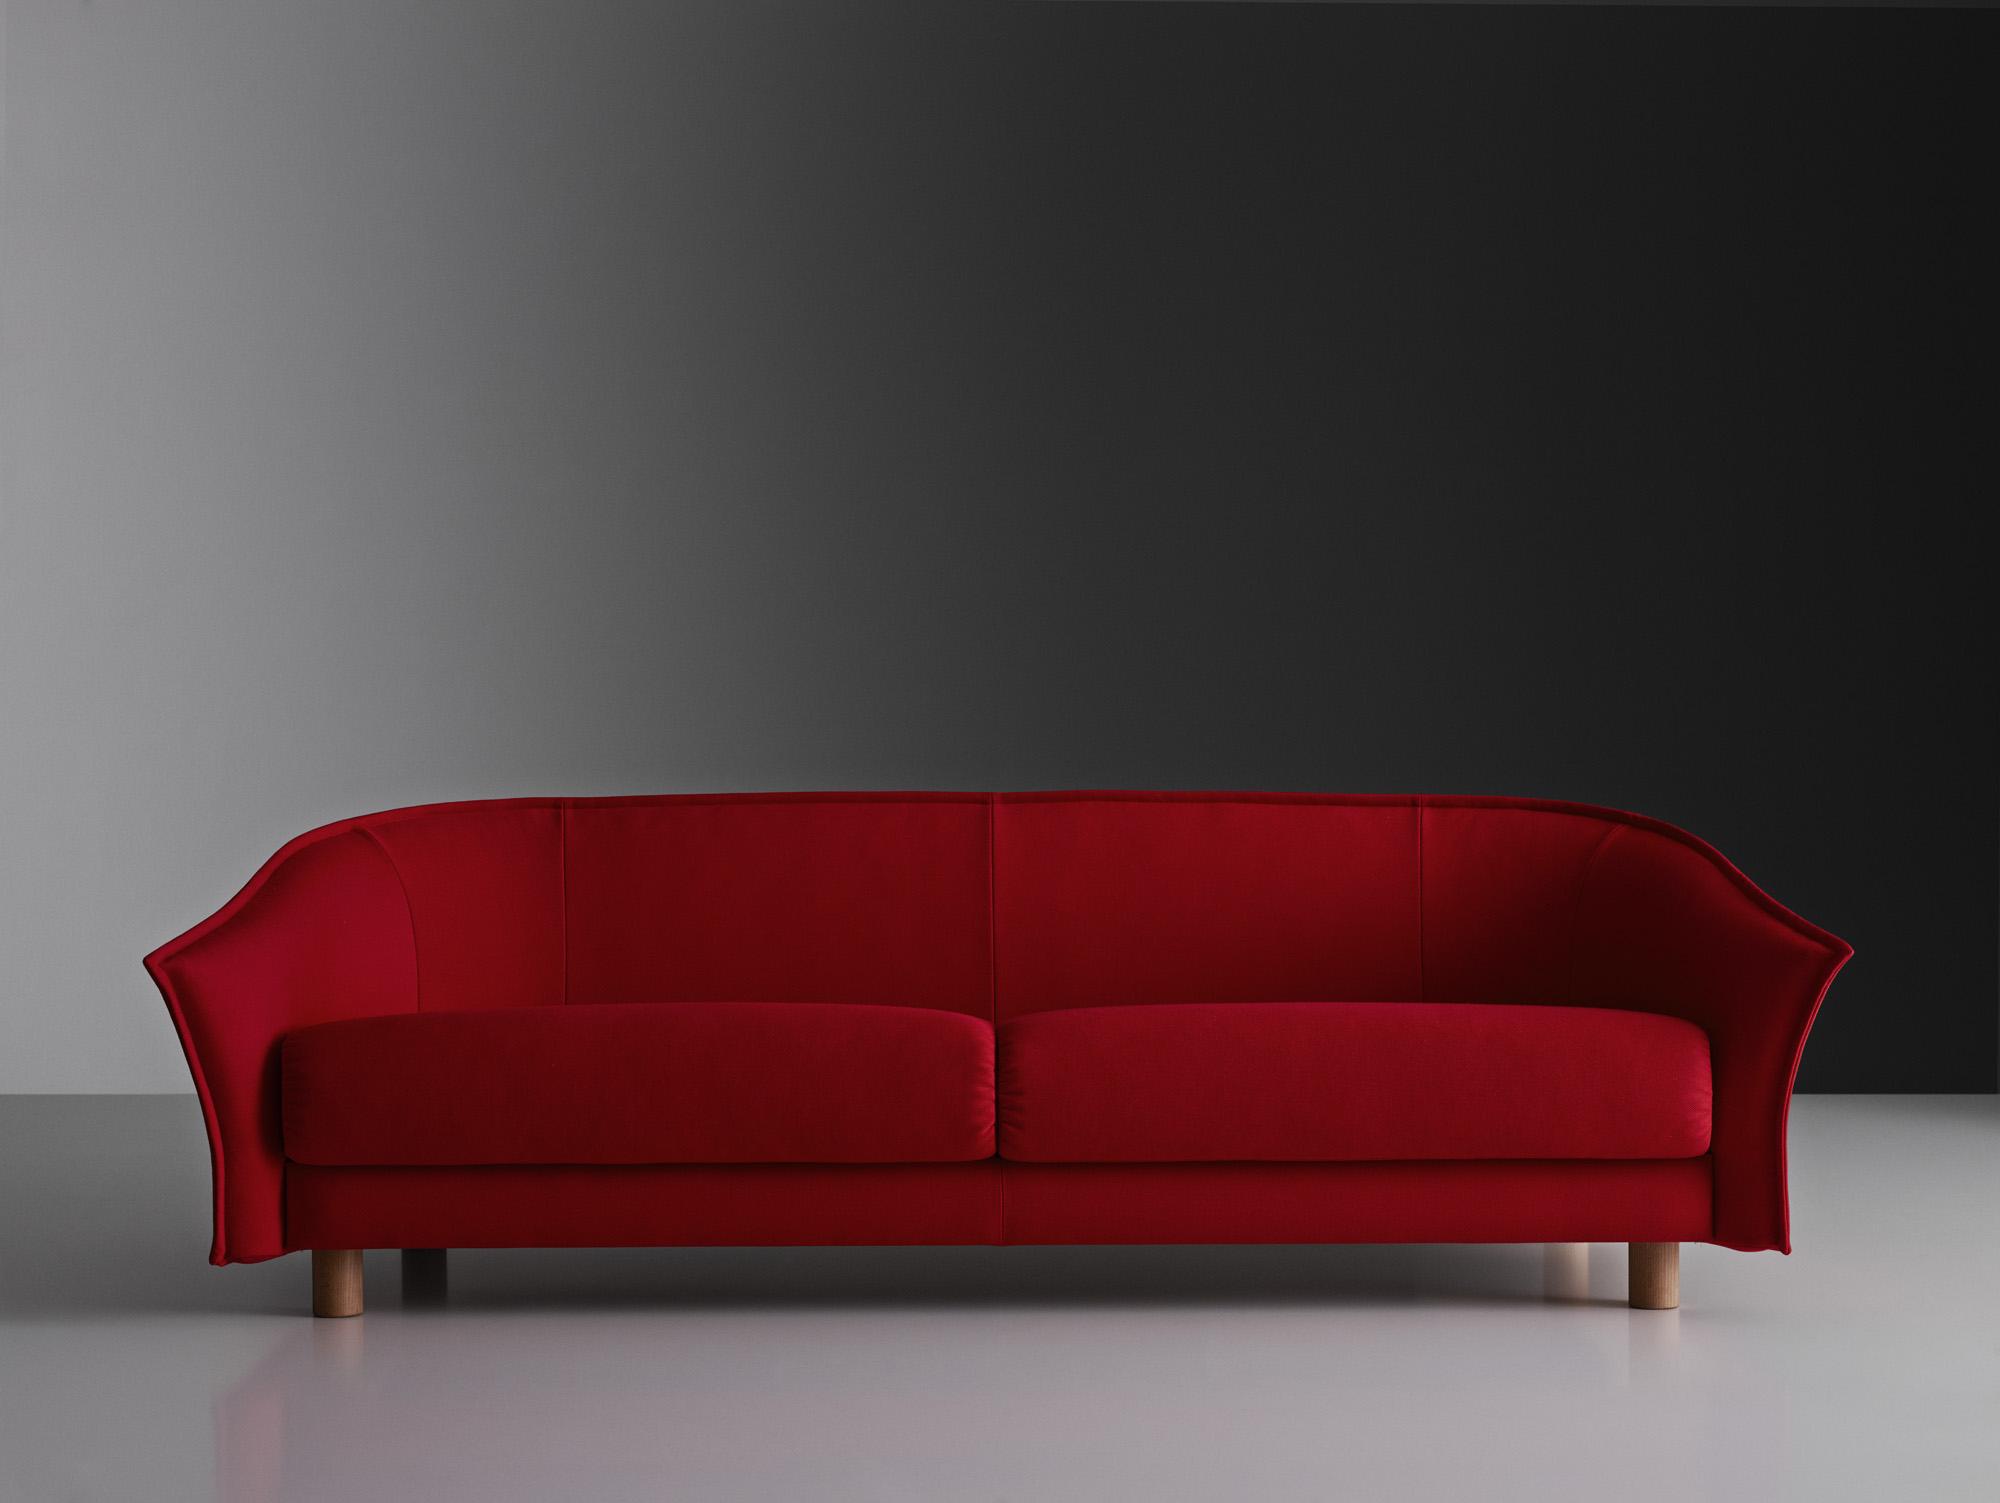 The 'Diva' sofa by Staffan Holm for Swedese. Fairly conventional from the front, it has an unusual profile.